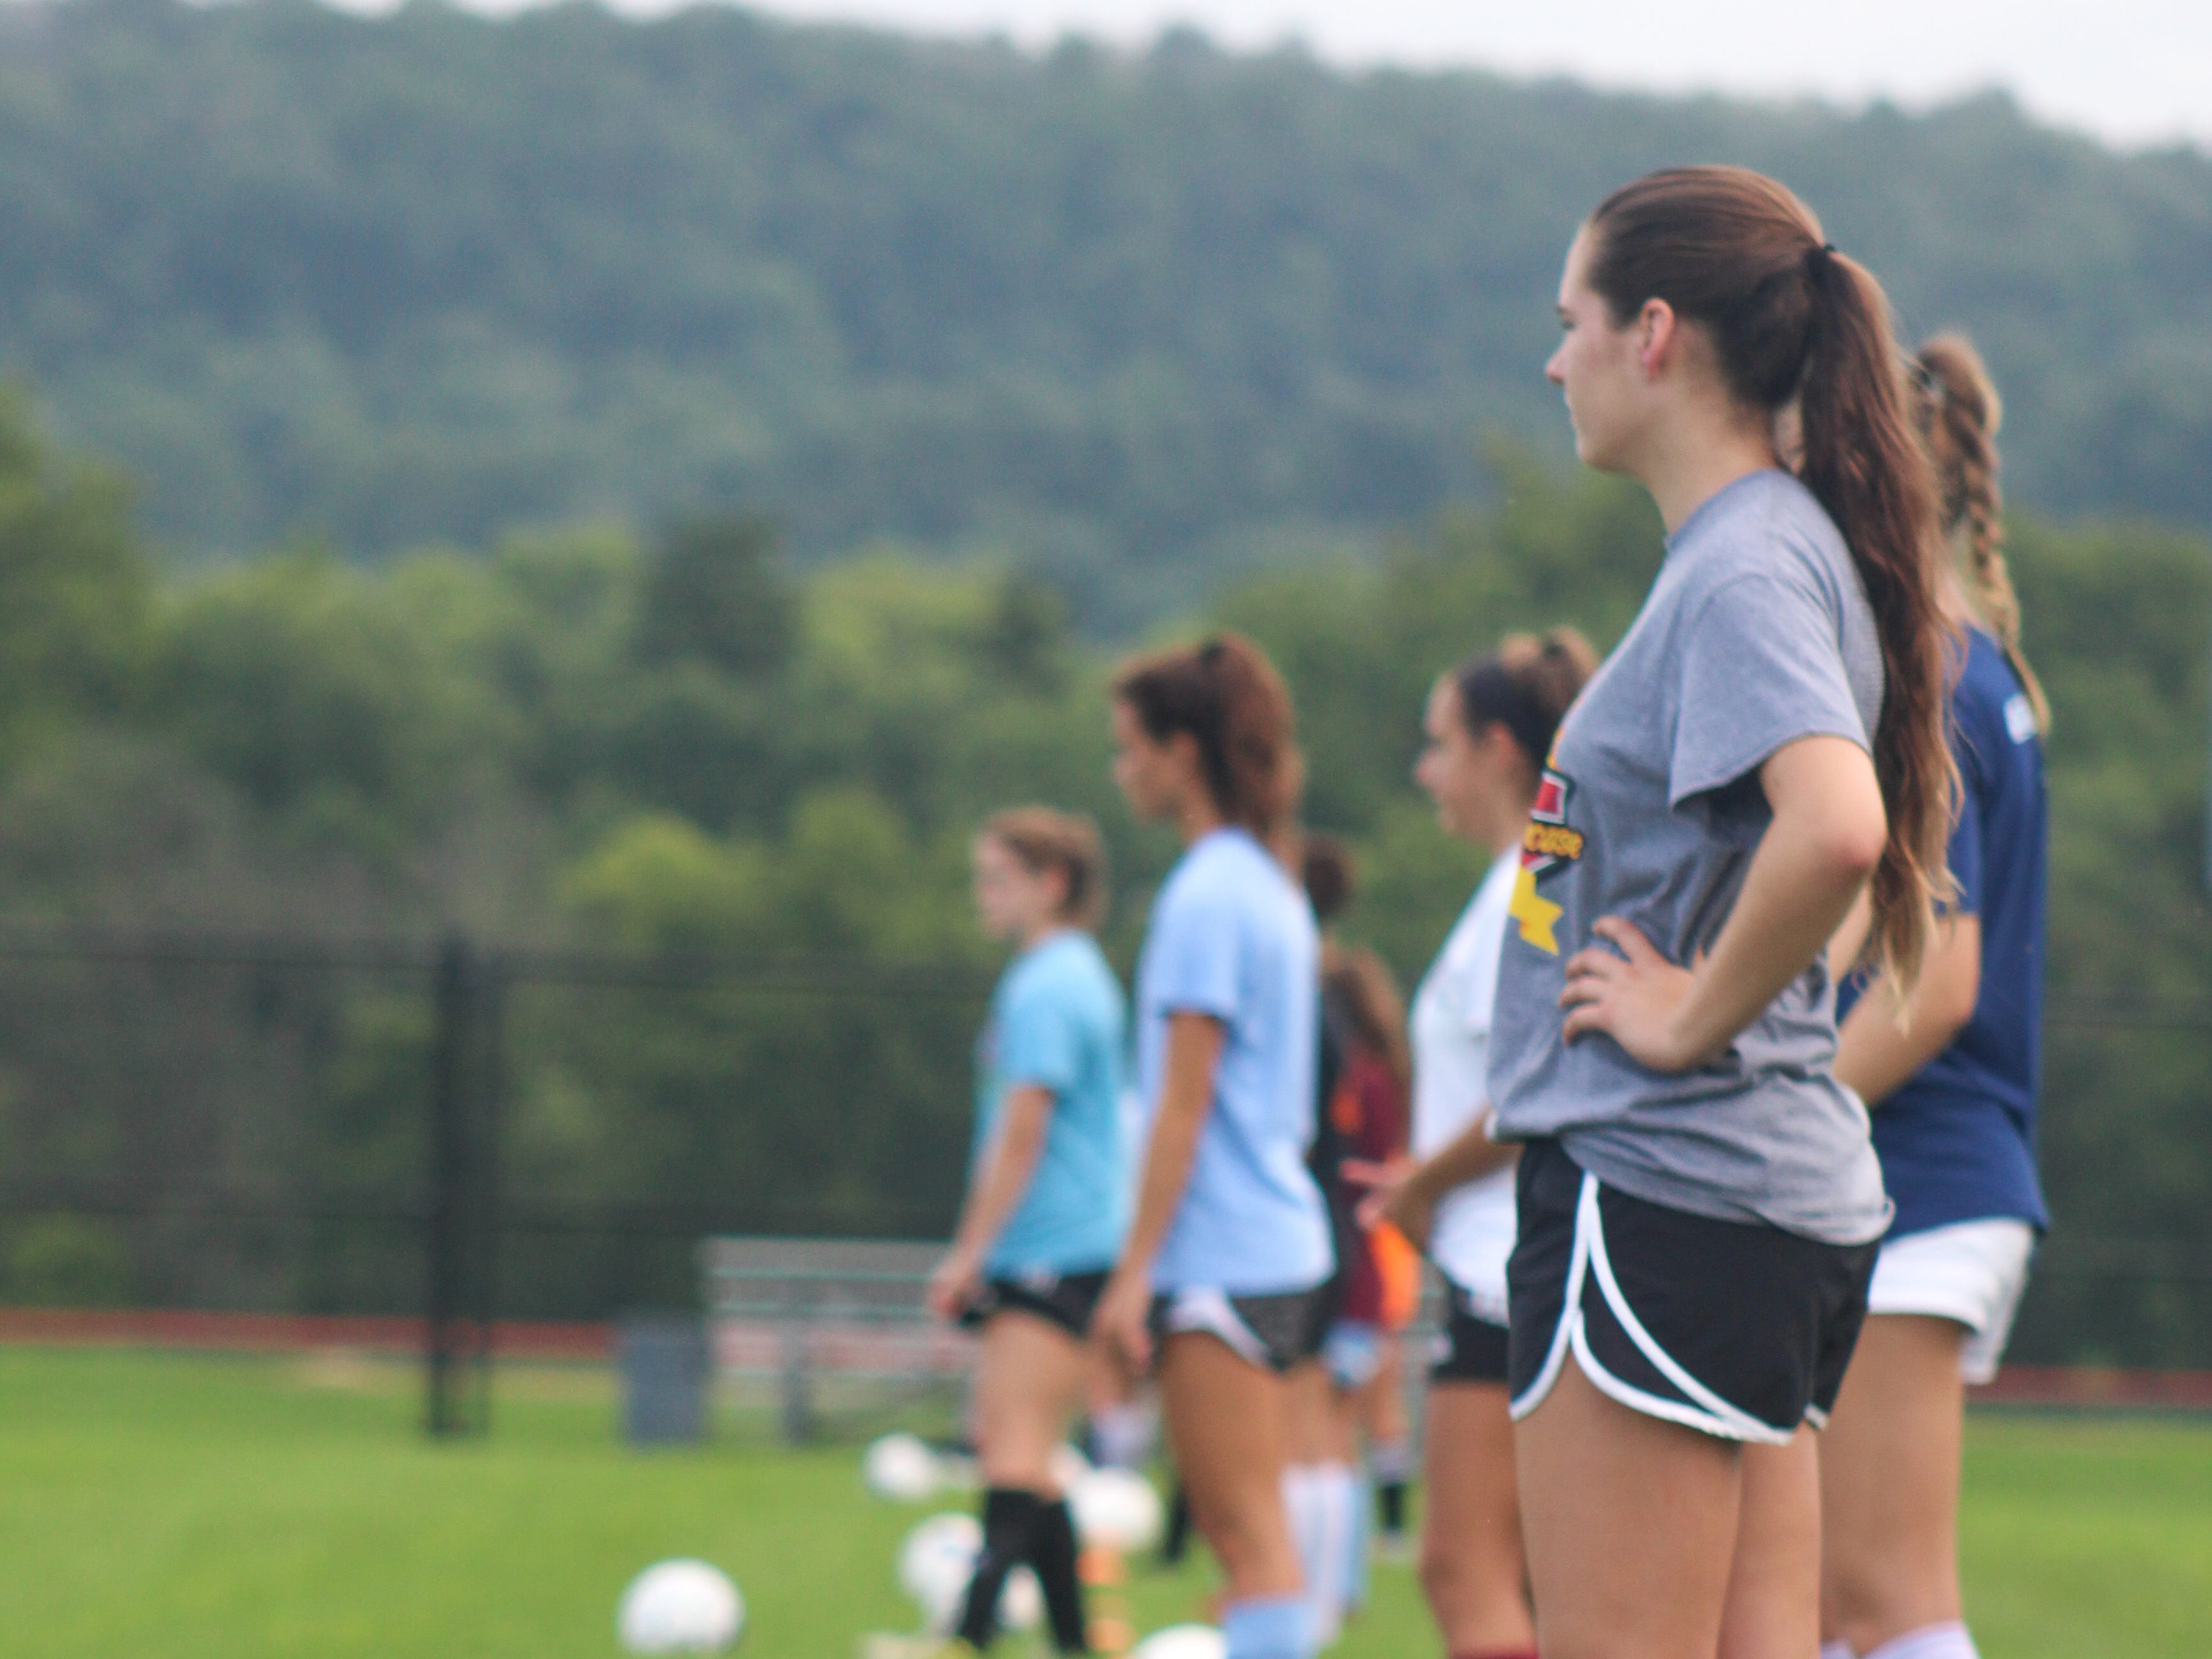 Central York High School soccer players prep for a drill on the first day of fall practices.